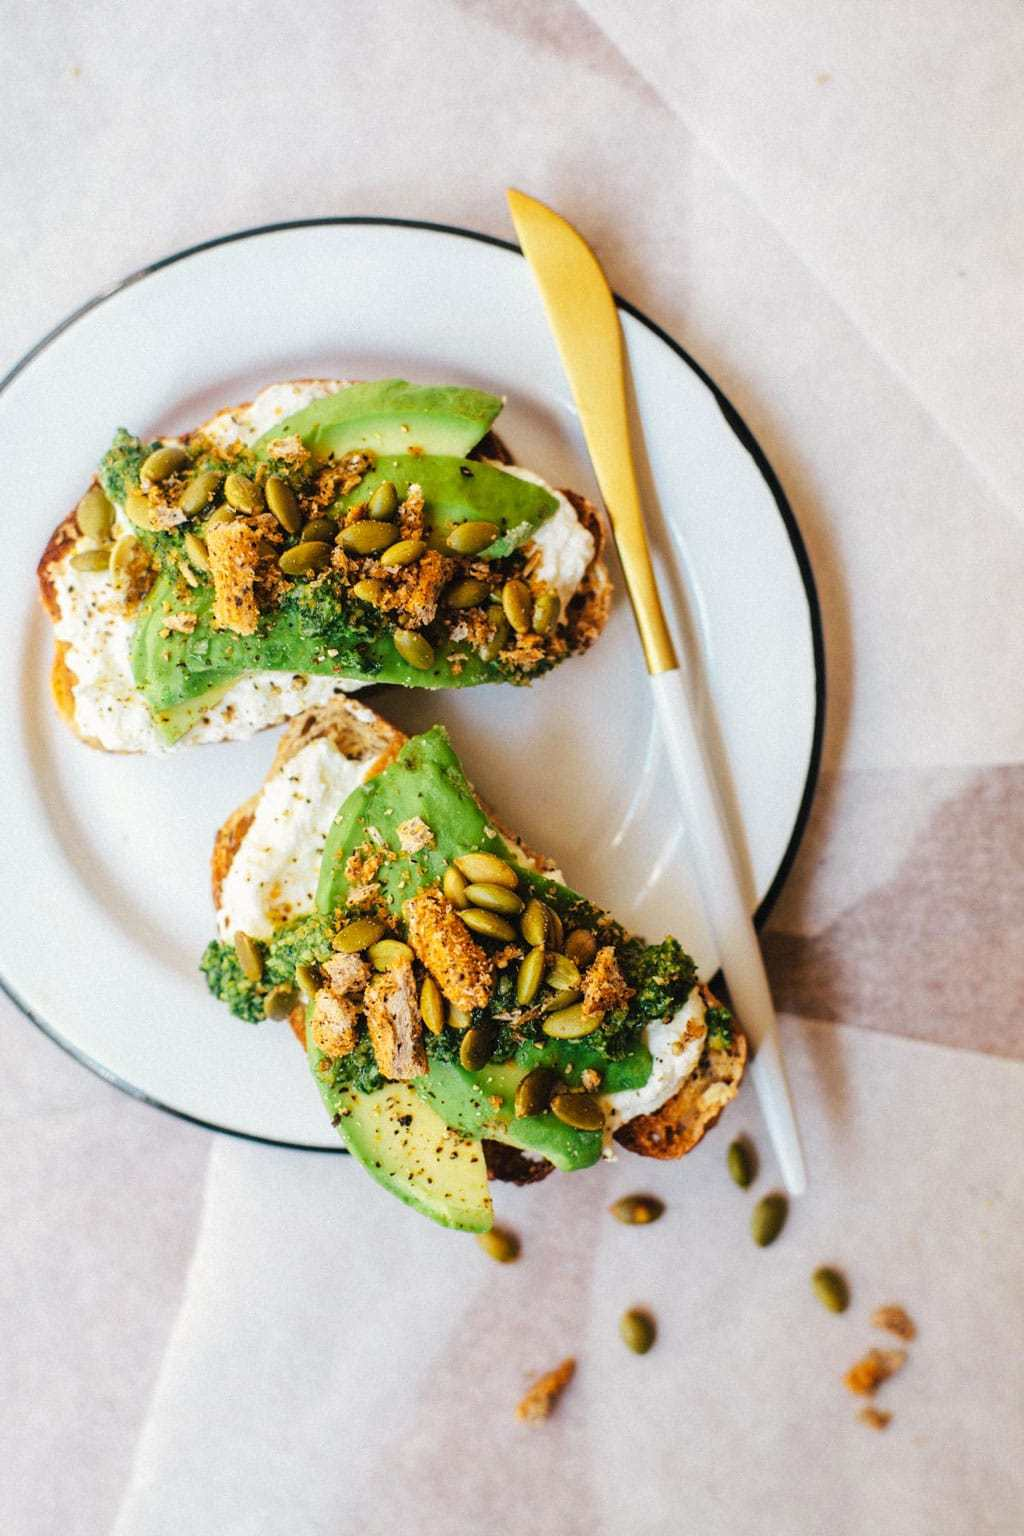 Fall and Winter Avocado Toast Recipes - Fall Avocado Toast with Kale Pesto and Ricotta via Brewing Happiness   https://www.roseclearfield.com